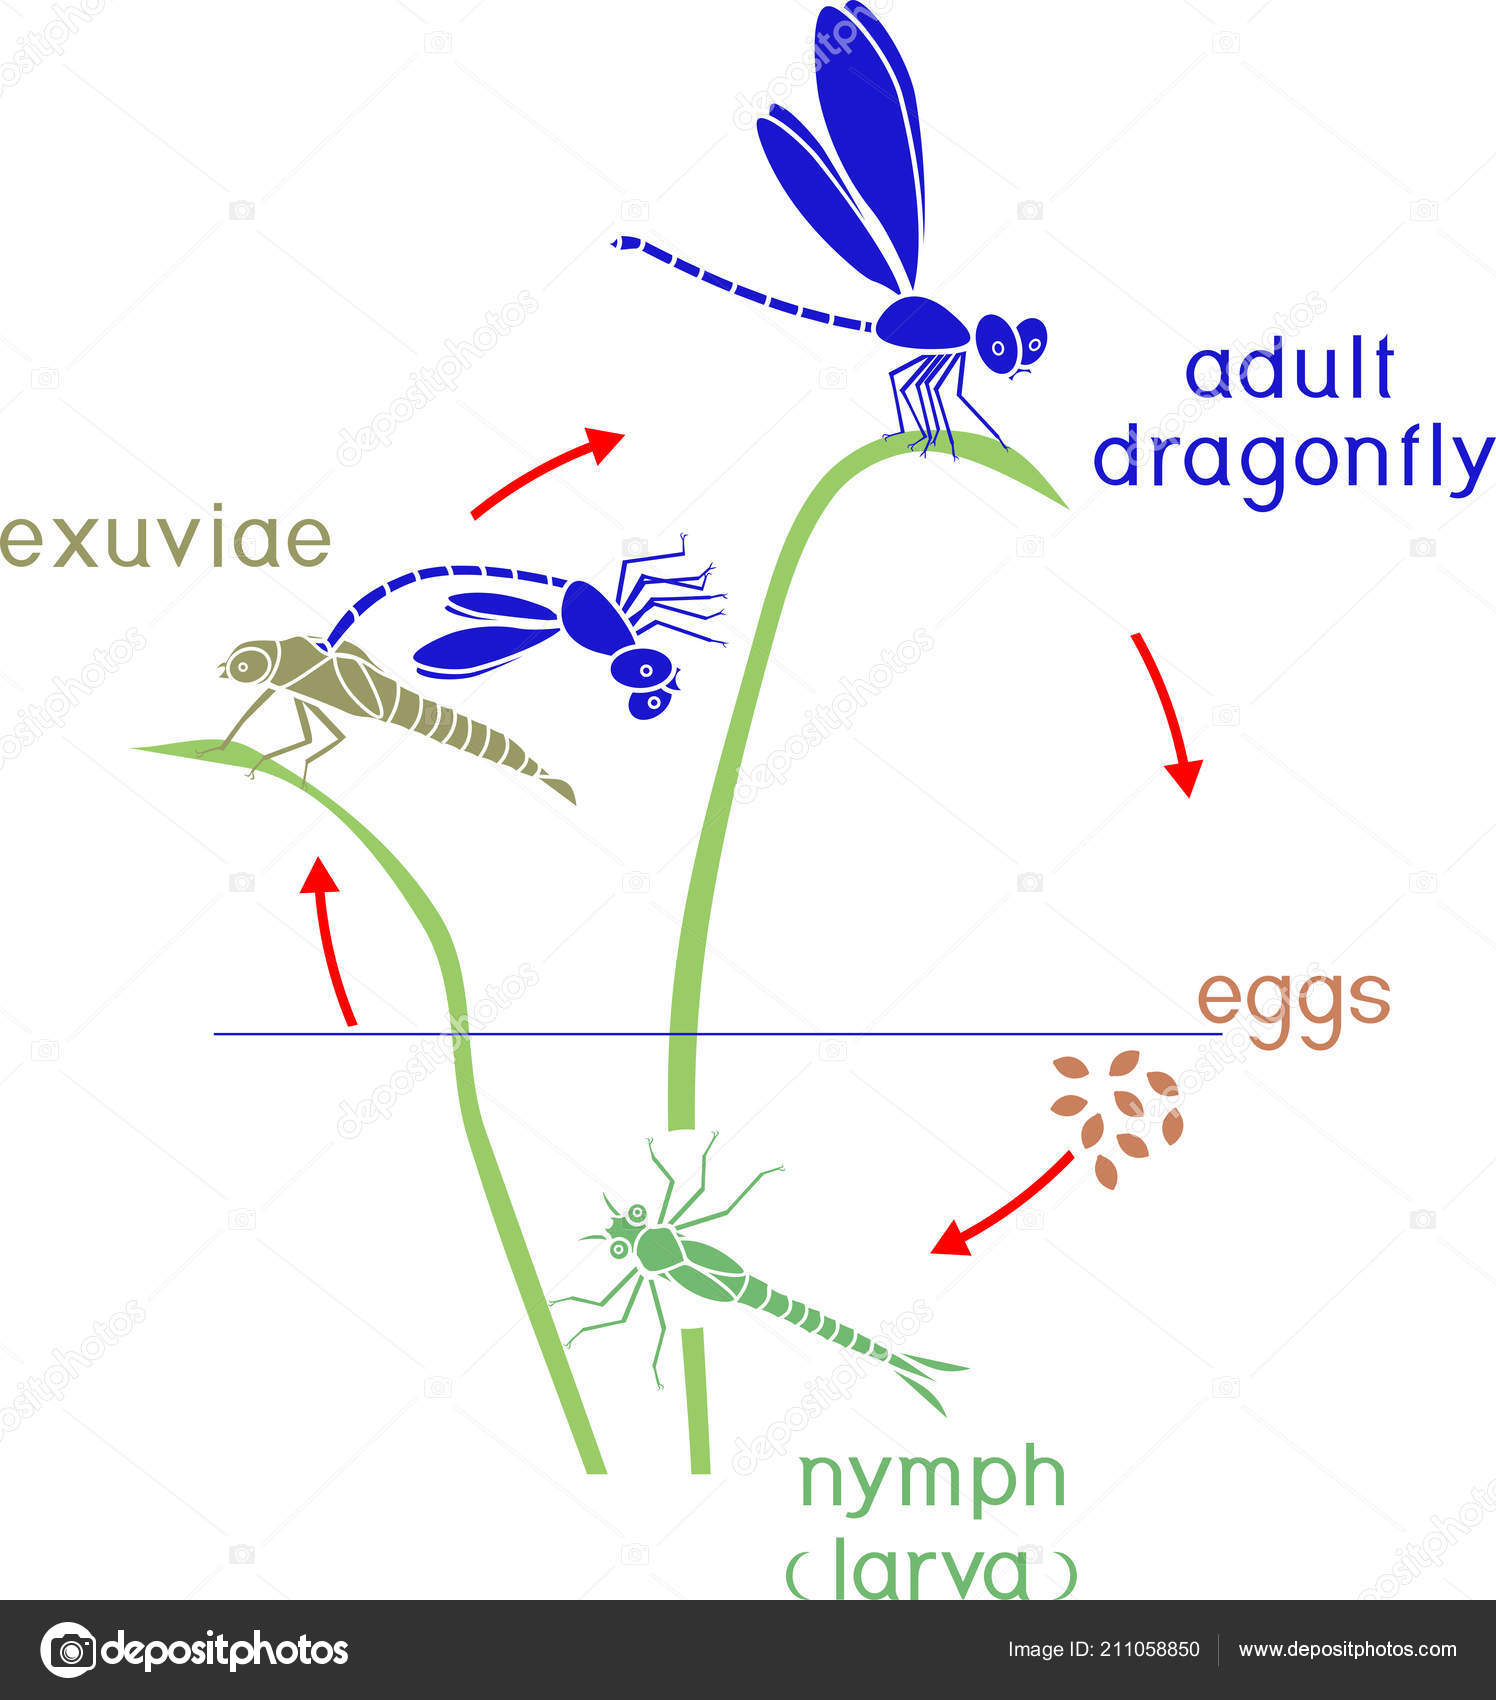 Images Dragonfly Life Cycle